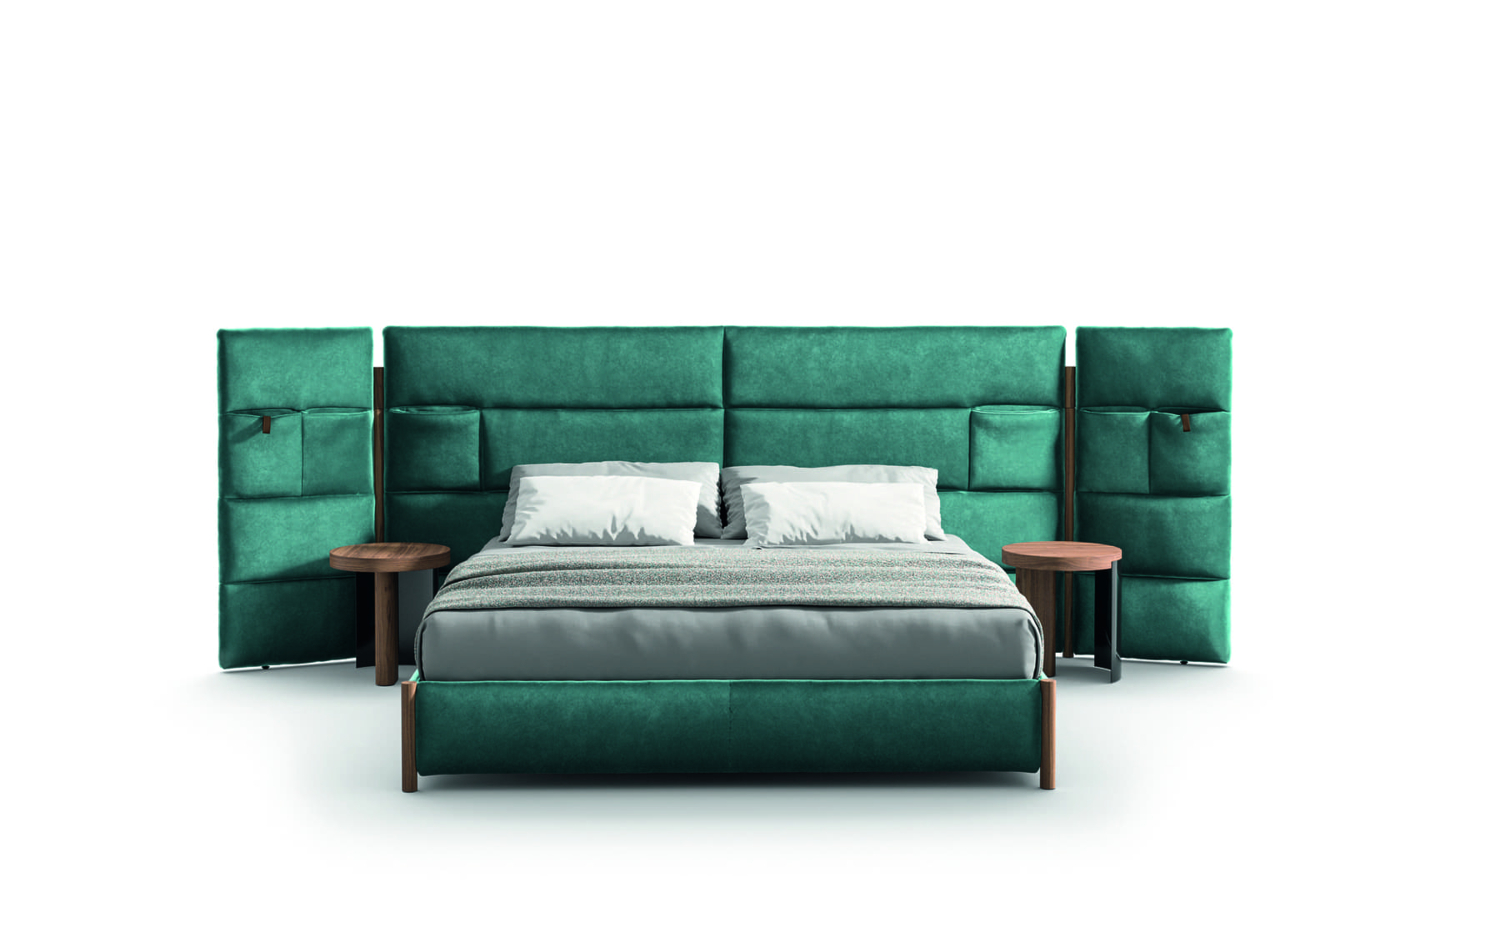 CASSINA Perspective at night 01